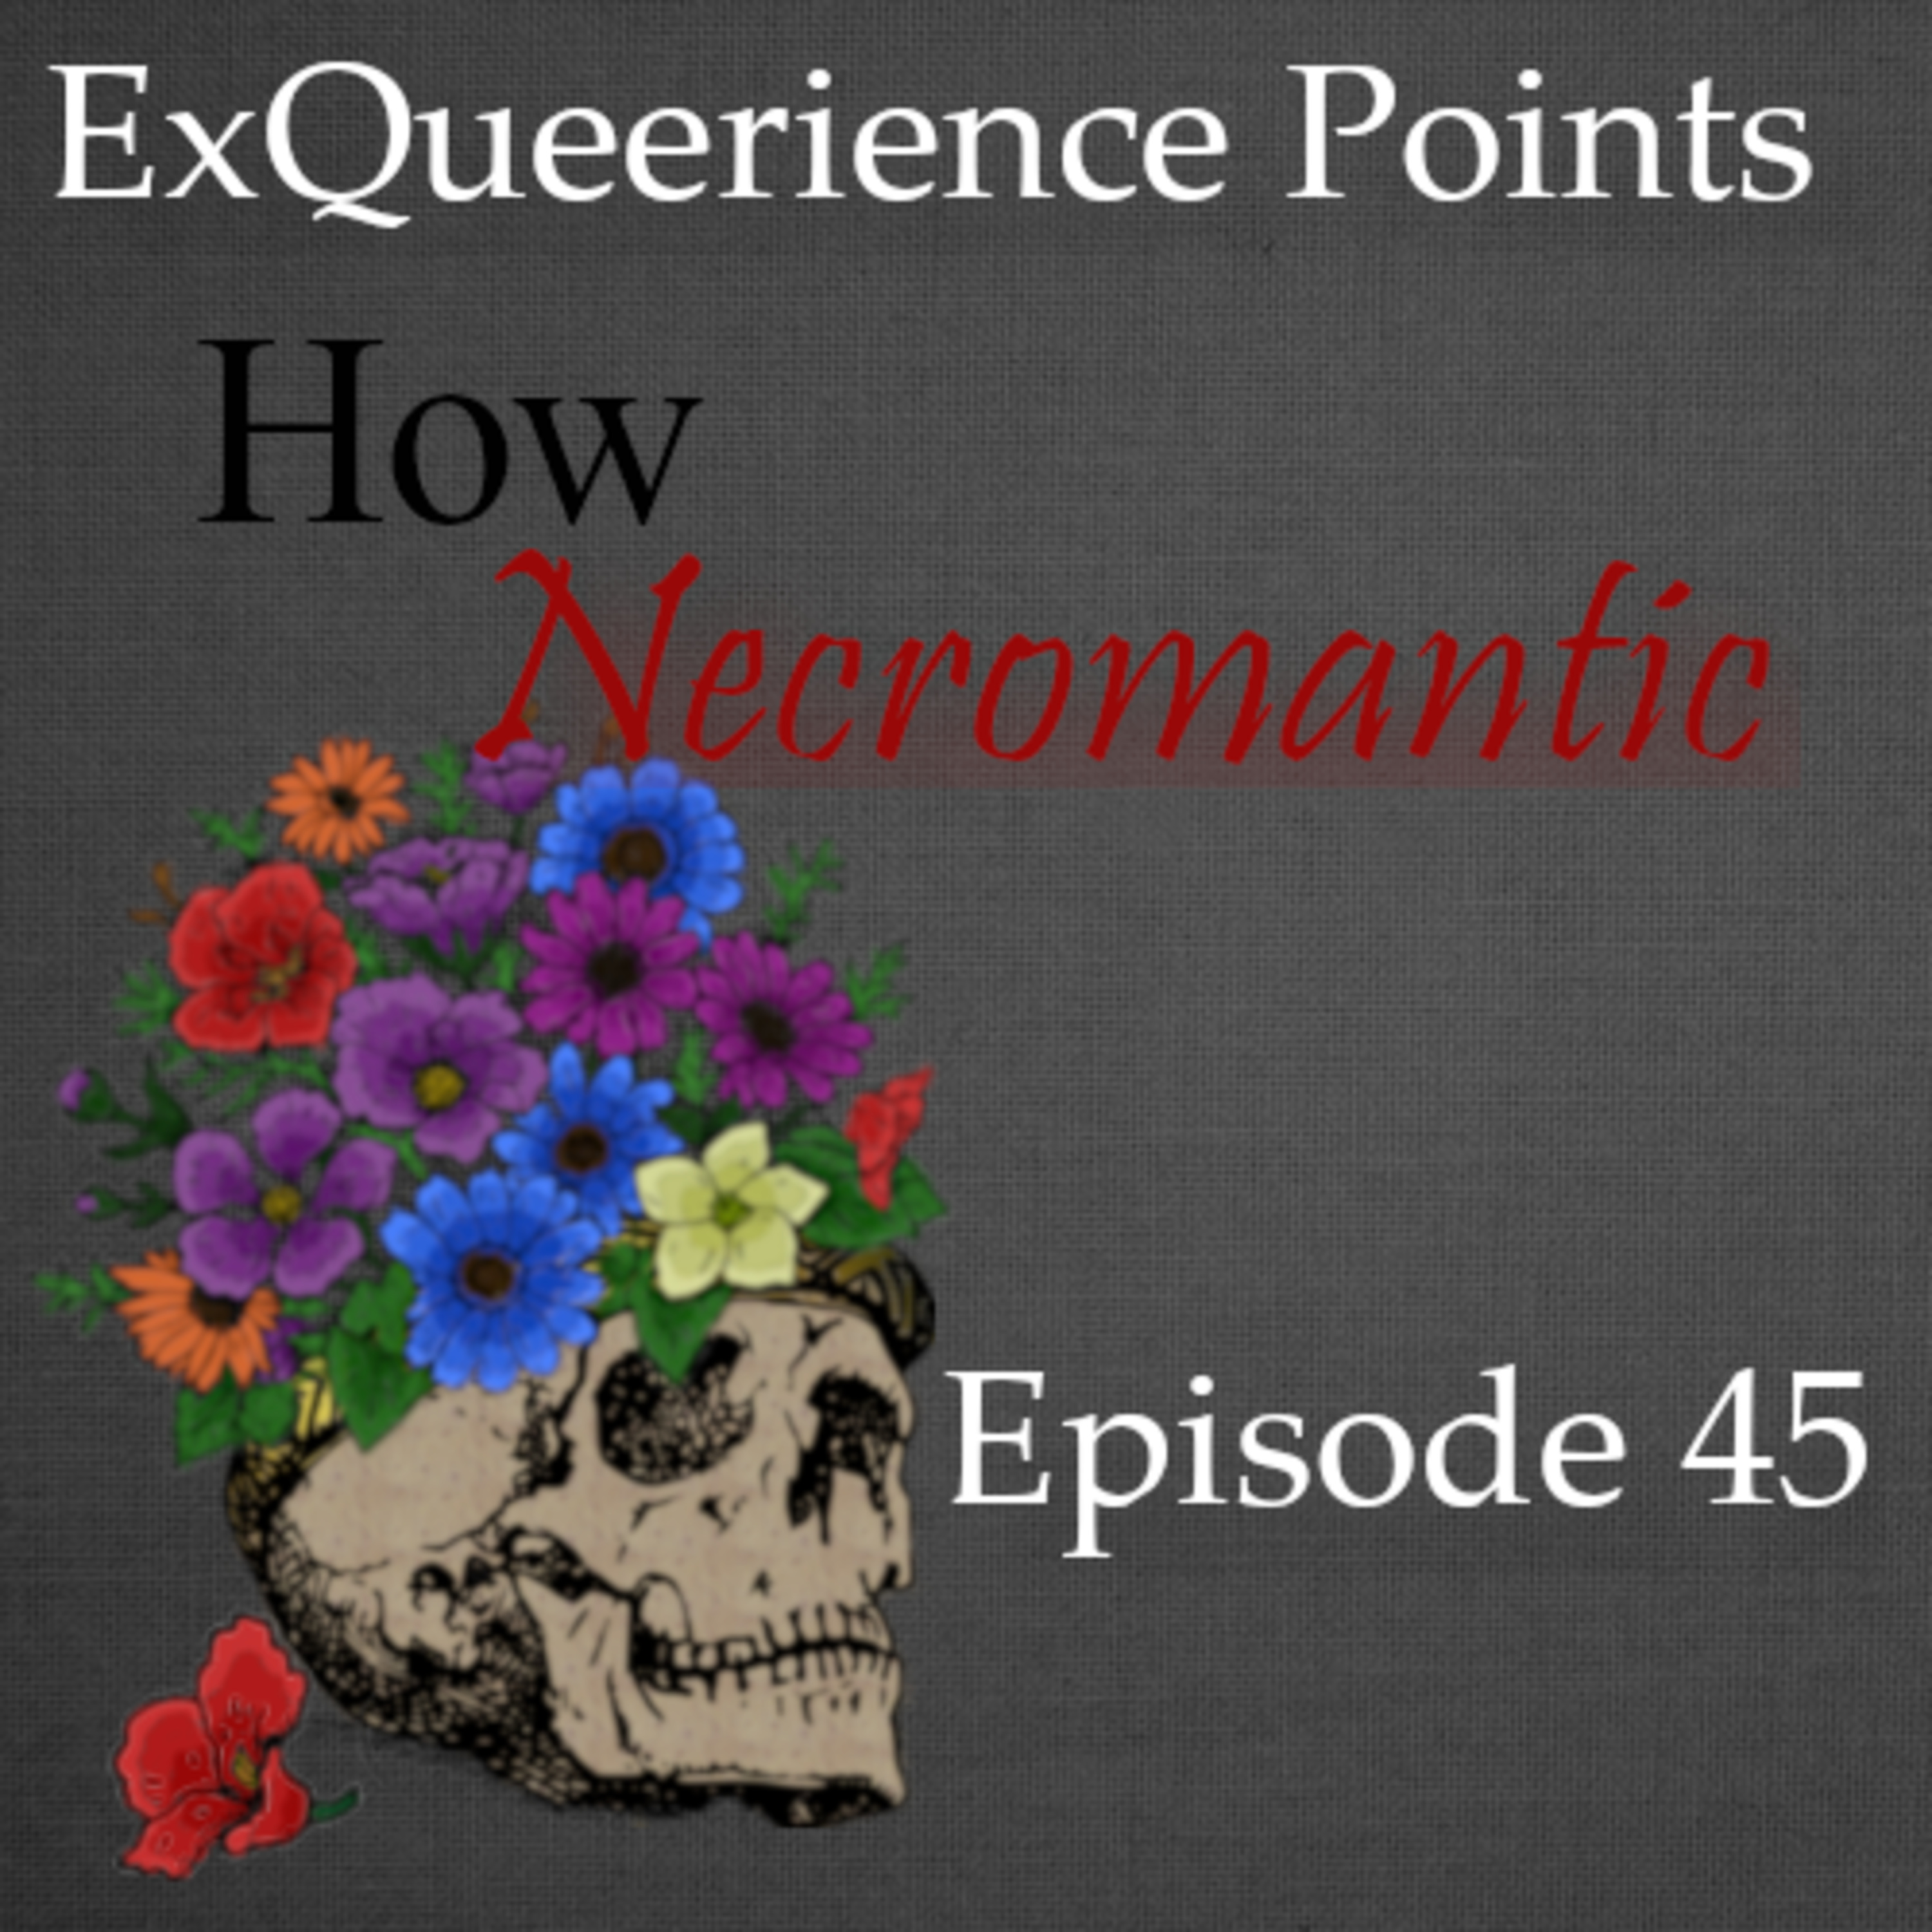 Episode 45 How Necromantic